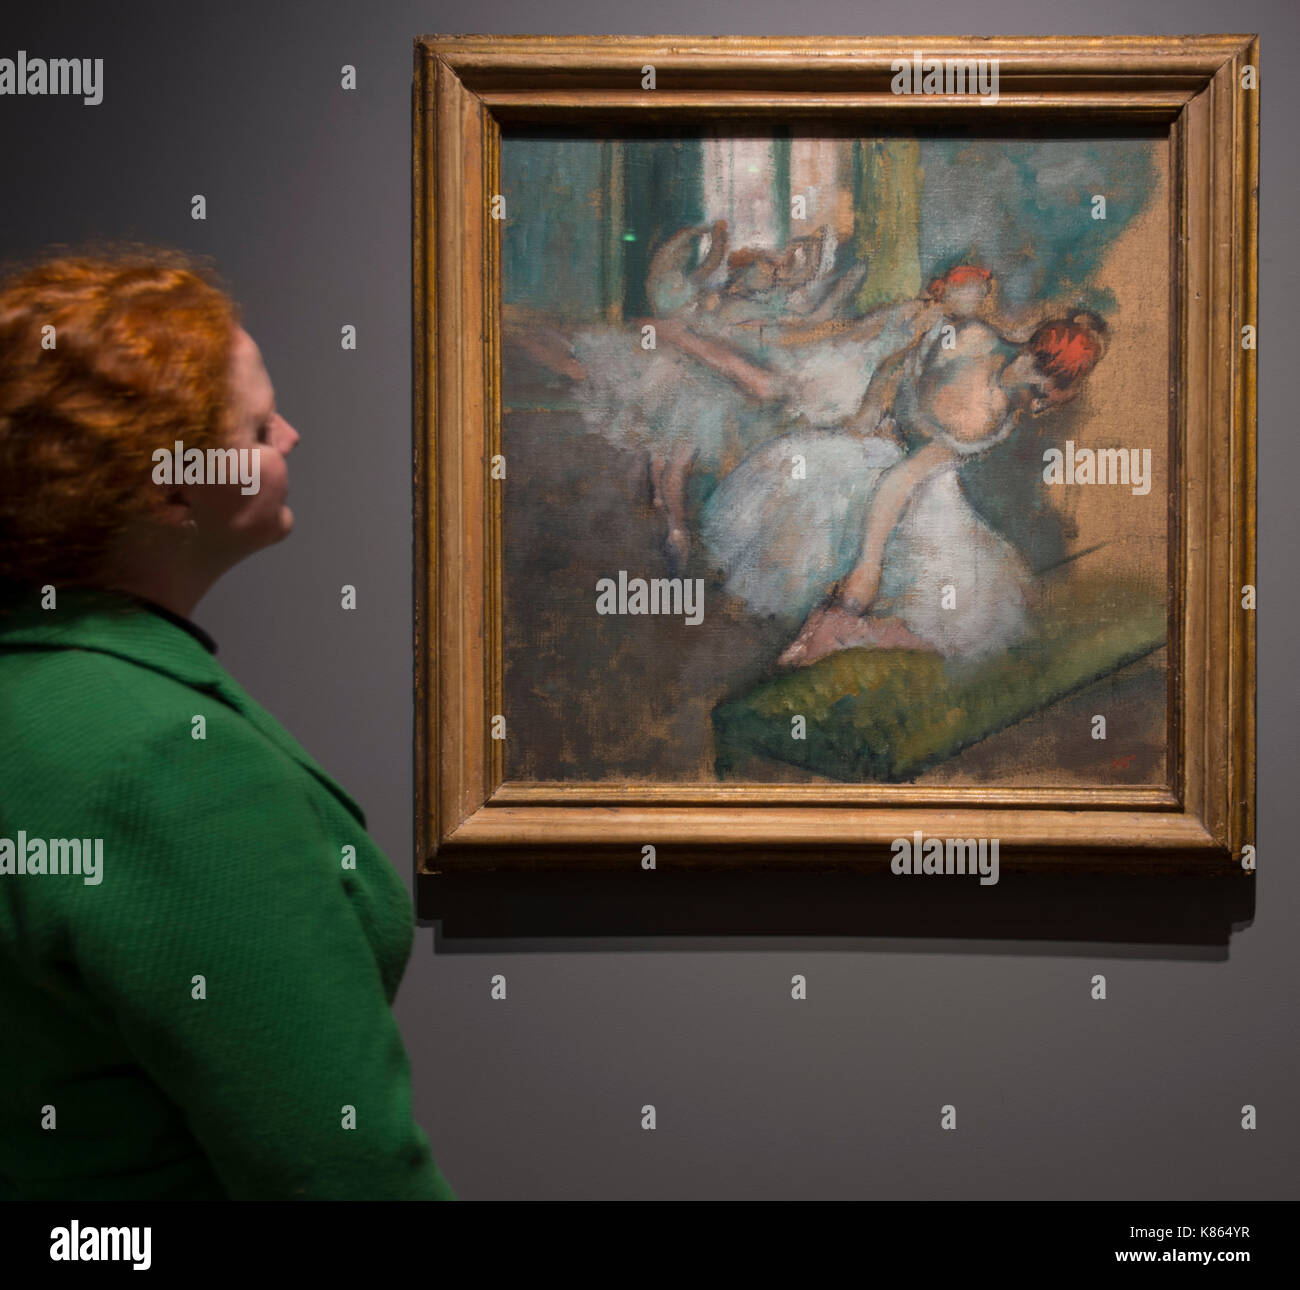 National Gallery, London, UK. 18 September, 2017. Degas artworks from the Burrell Collection in Glasgow go on display at the National Gallery from 20 September 2017 - 7 May 2018. Shipping magnate Sir William Burrell gifted his large collection of art, including one of the finest collections of Degas pastels in the world, to the City of Glasgow in 1944. 13 pastels, three drawings and four oil paintings from the Burrell are exhibited at the National Gallery. Credit: Malcolm Park/Alamy Live News - Stock Image